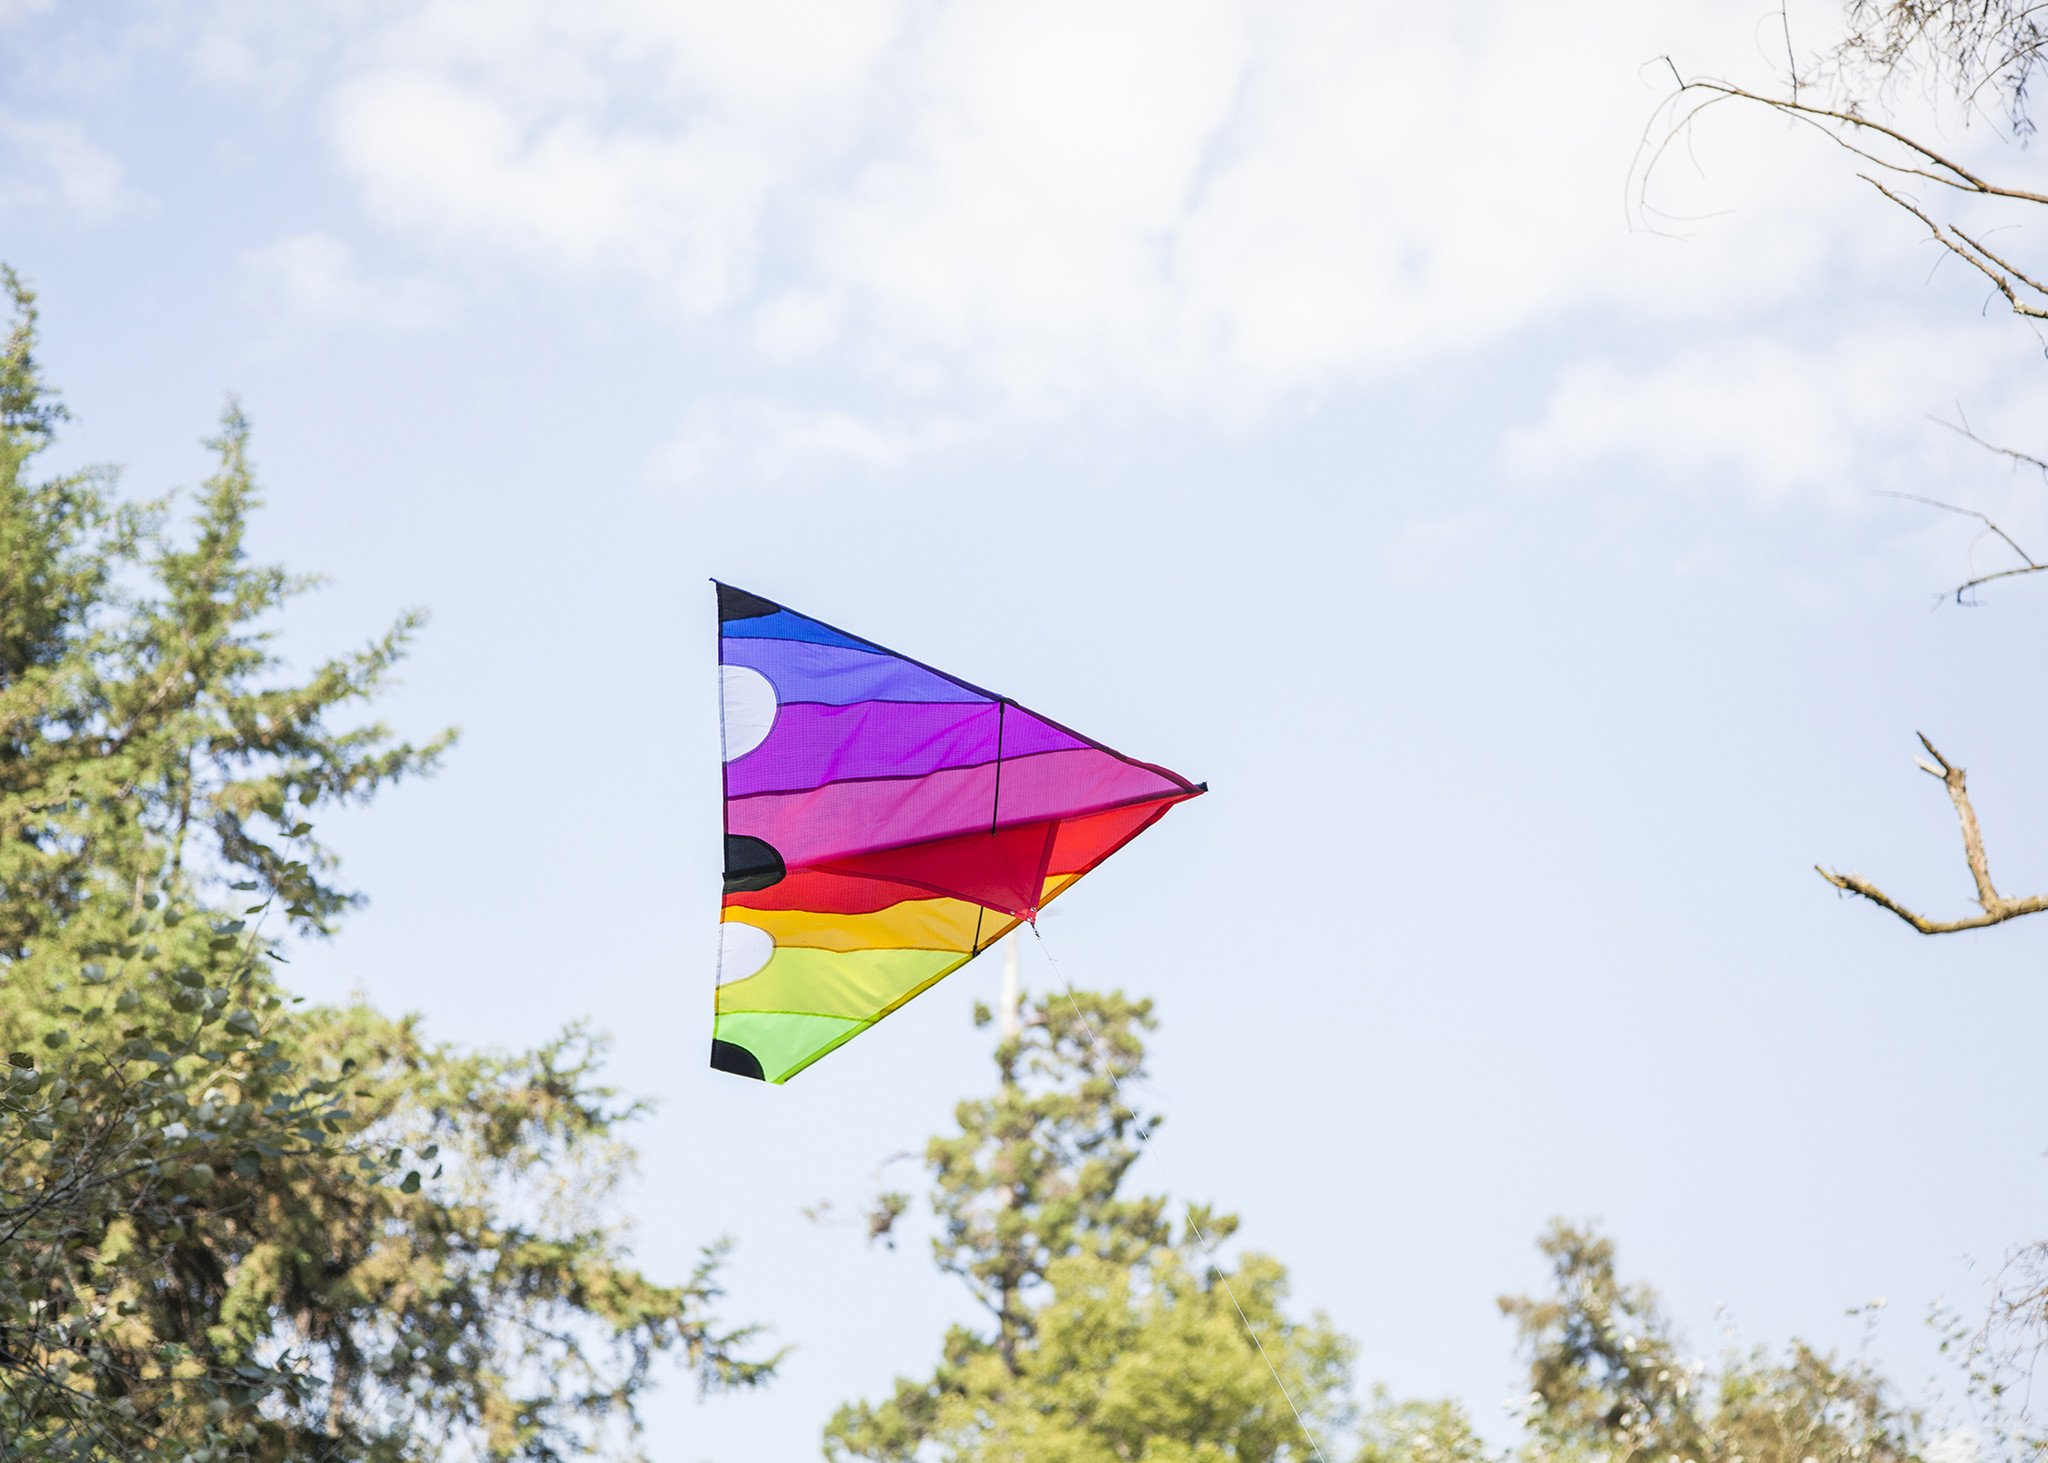 AREAWARE SUNSET KITE € 42,95